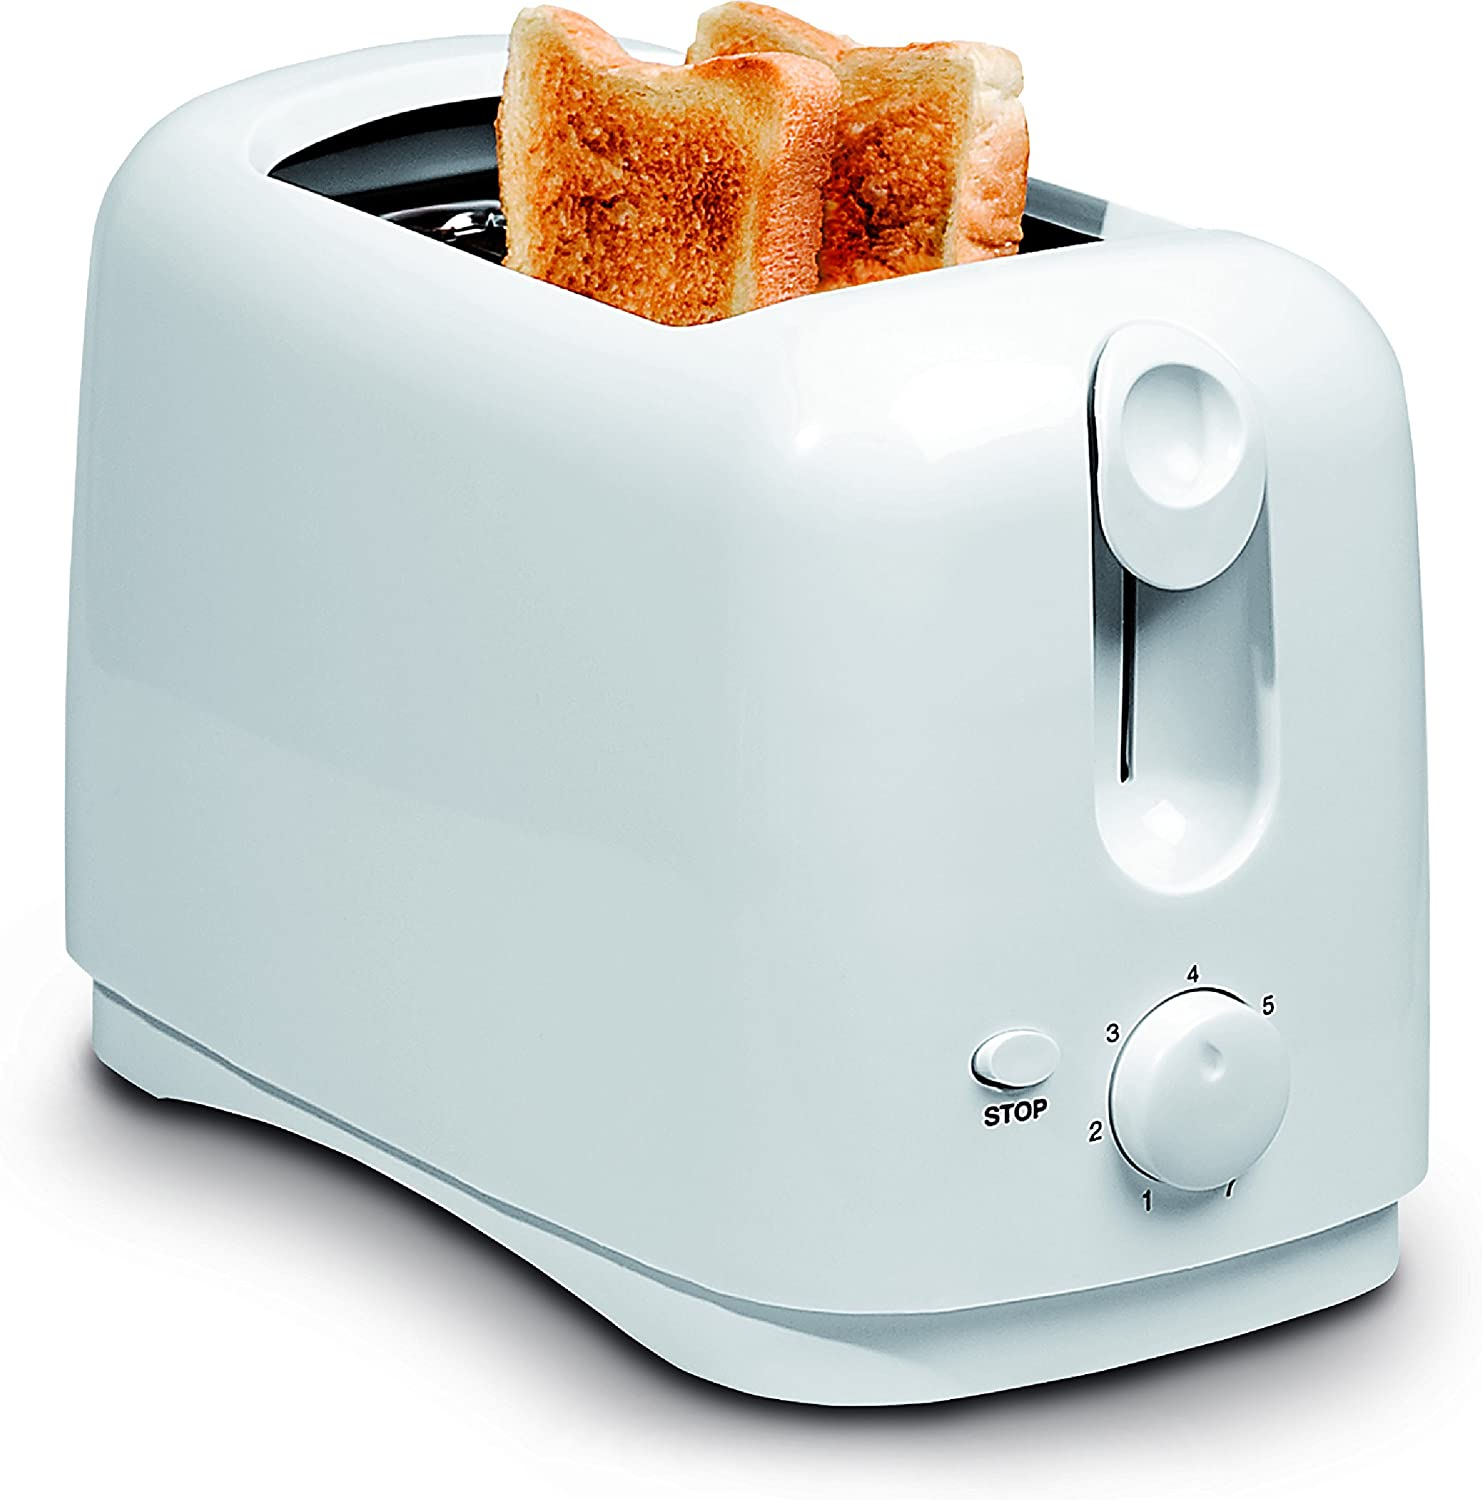 Uniware 8711WH Two Slice Wide Slots Toaster,750 Watts,Cool Touch Exterior,White